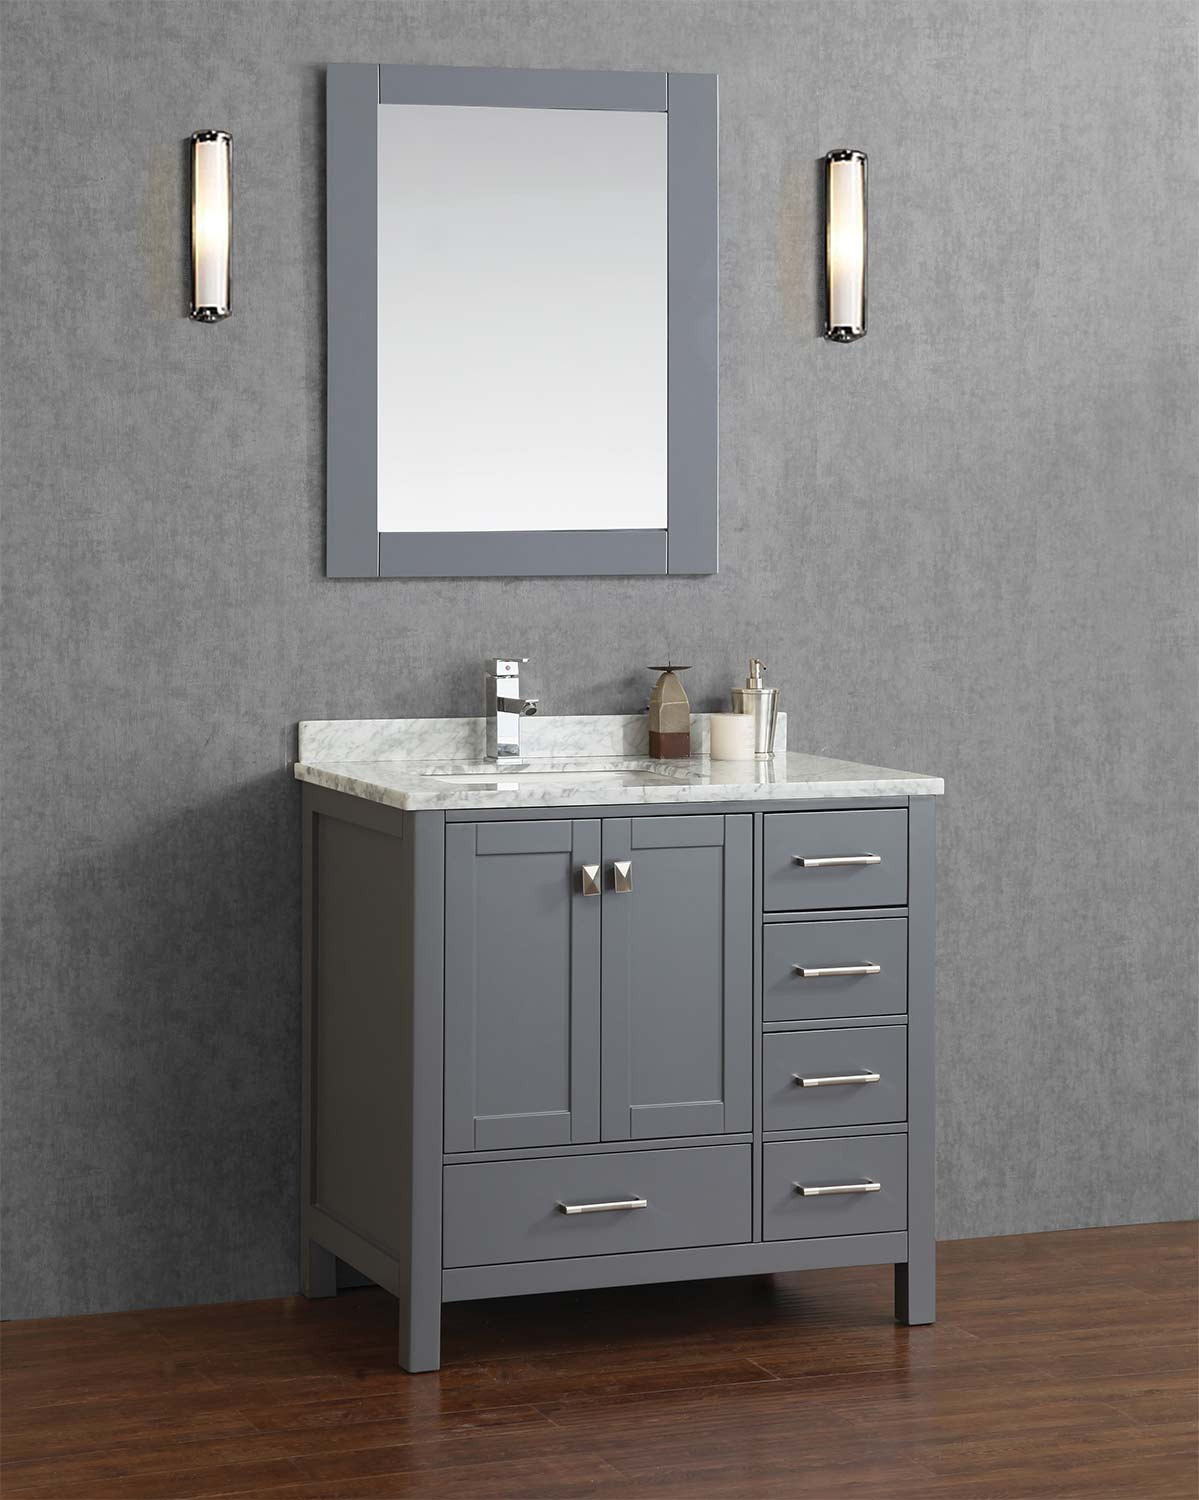 Vincent 36 Solid Wood Single Bathroom Vanity In Charcoal Grey Hm 13001 Wmsq Cg